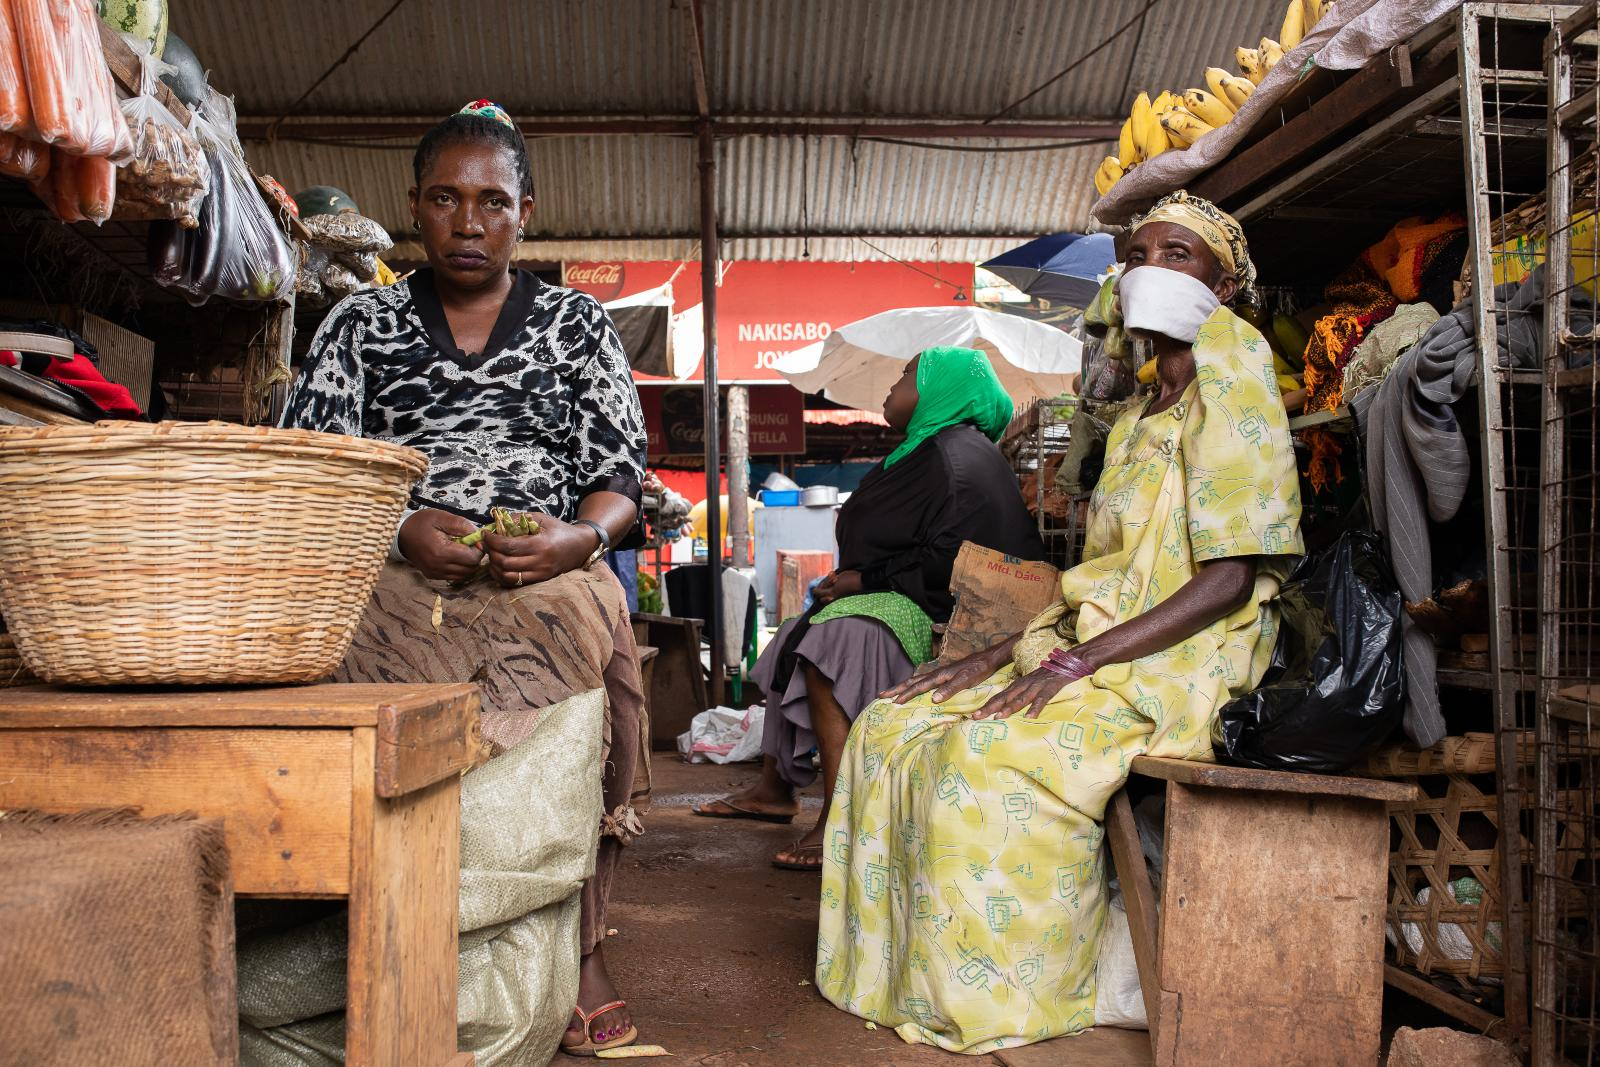 Three women surrounded by good in a market stall